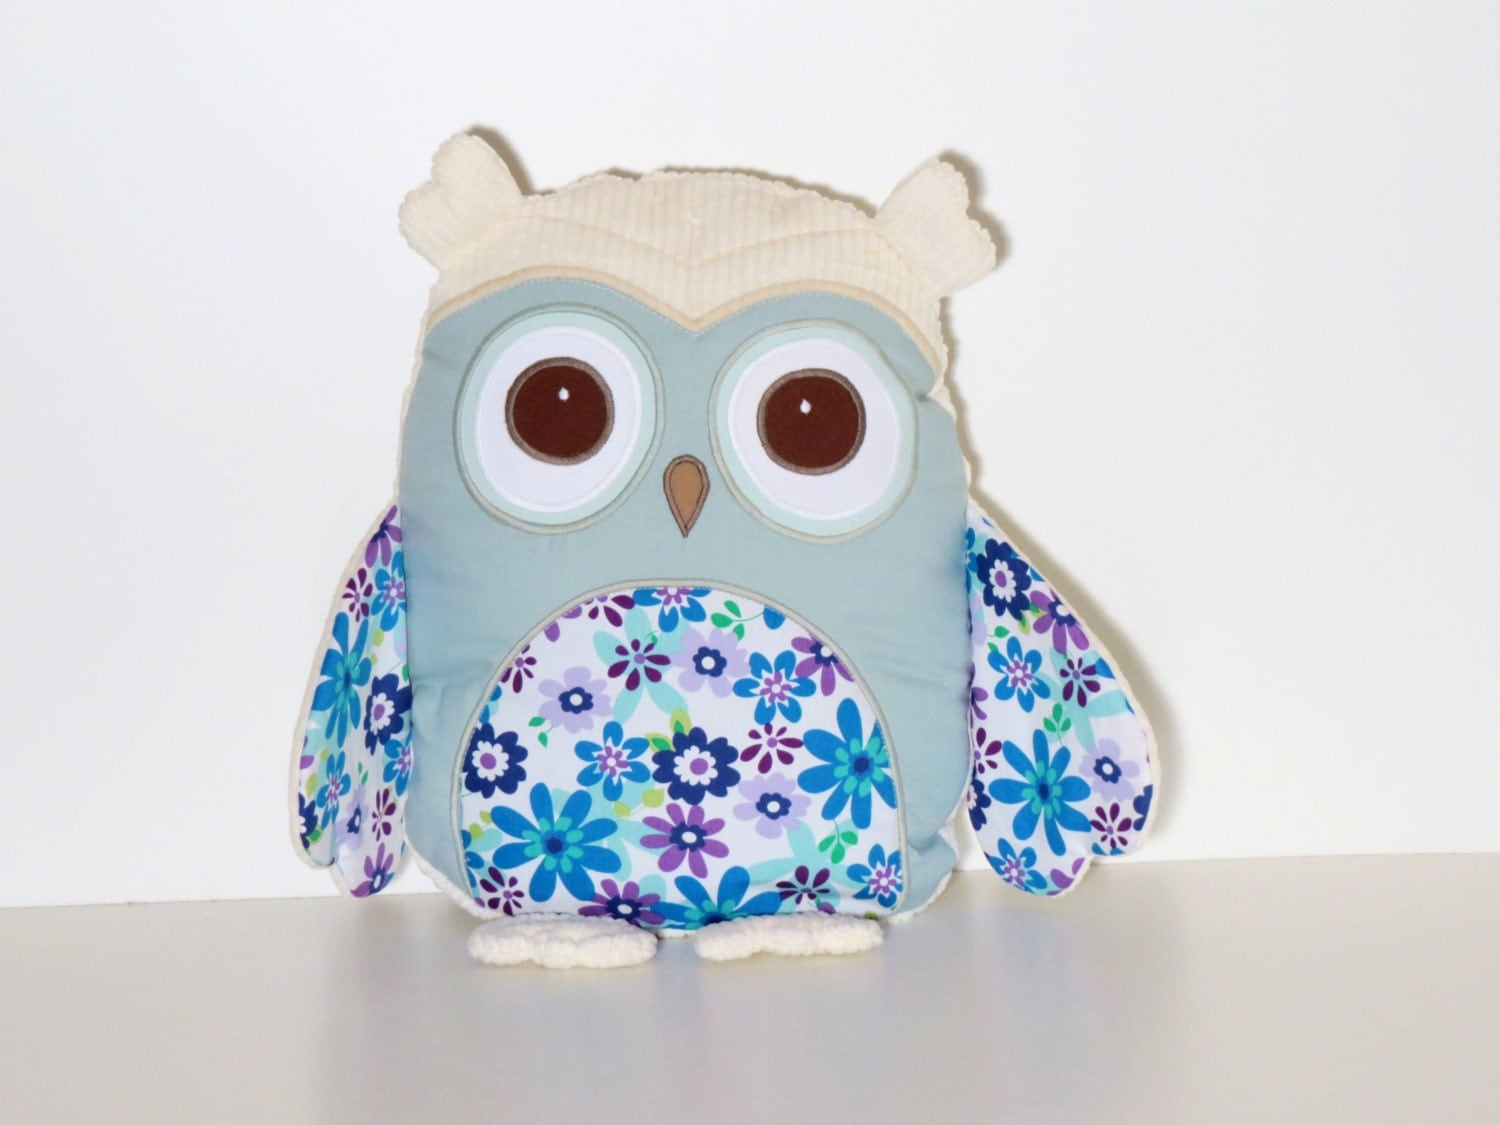 SALE / Owl Room Decor, Owl Throw Pillow, Embroidered Owl Pillow Cover